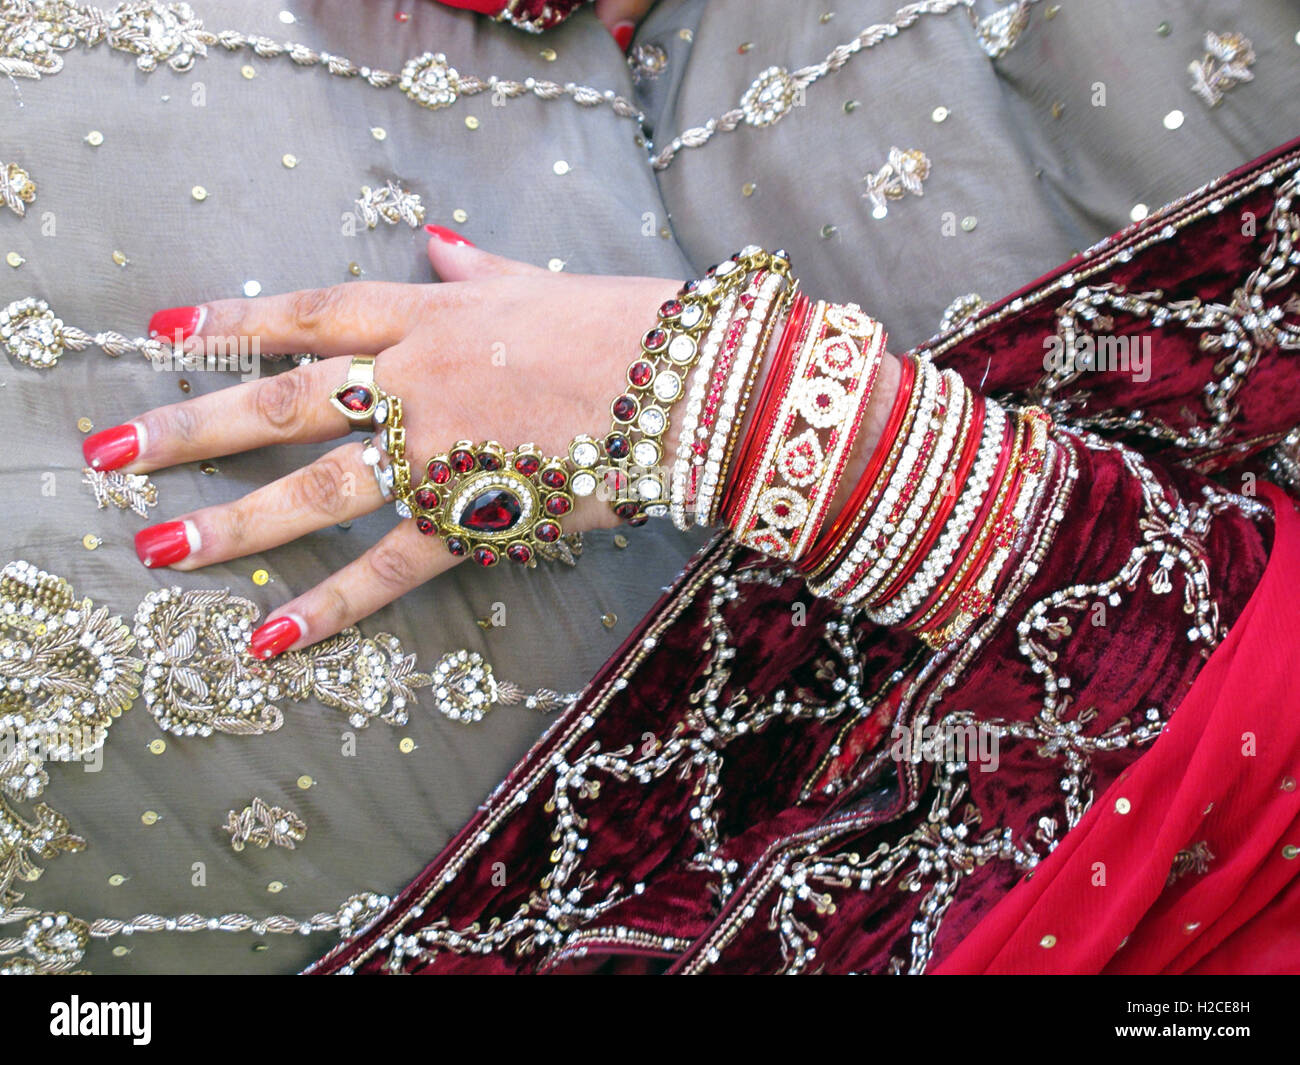 Muslim,Islam,adult,age,aged,arms,asia,asian,bracelets,bride,finger,carat,ceremony,chest,classy,concept,costume,cover,covering,crossed,crossing,dress,expensive,female,females,girl,gold,hands,henna,india,indian,jewelery,ladies,lady,luxurious,mangalsutra,marriage,married,mature,middle,necklace,oriental,GoTonySmith,@HotpixUK,Tony,Smith,different,unique,pakistan,pakistani,placing,posh,rings,sari,wedding,woman,women,Buy Pictures of,Buy Images Of,Images of,Stock Images,Tony Smith,Photo of